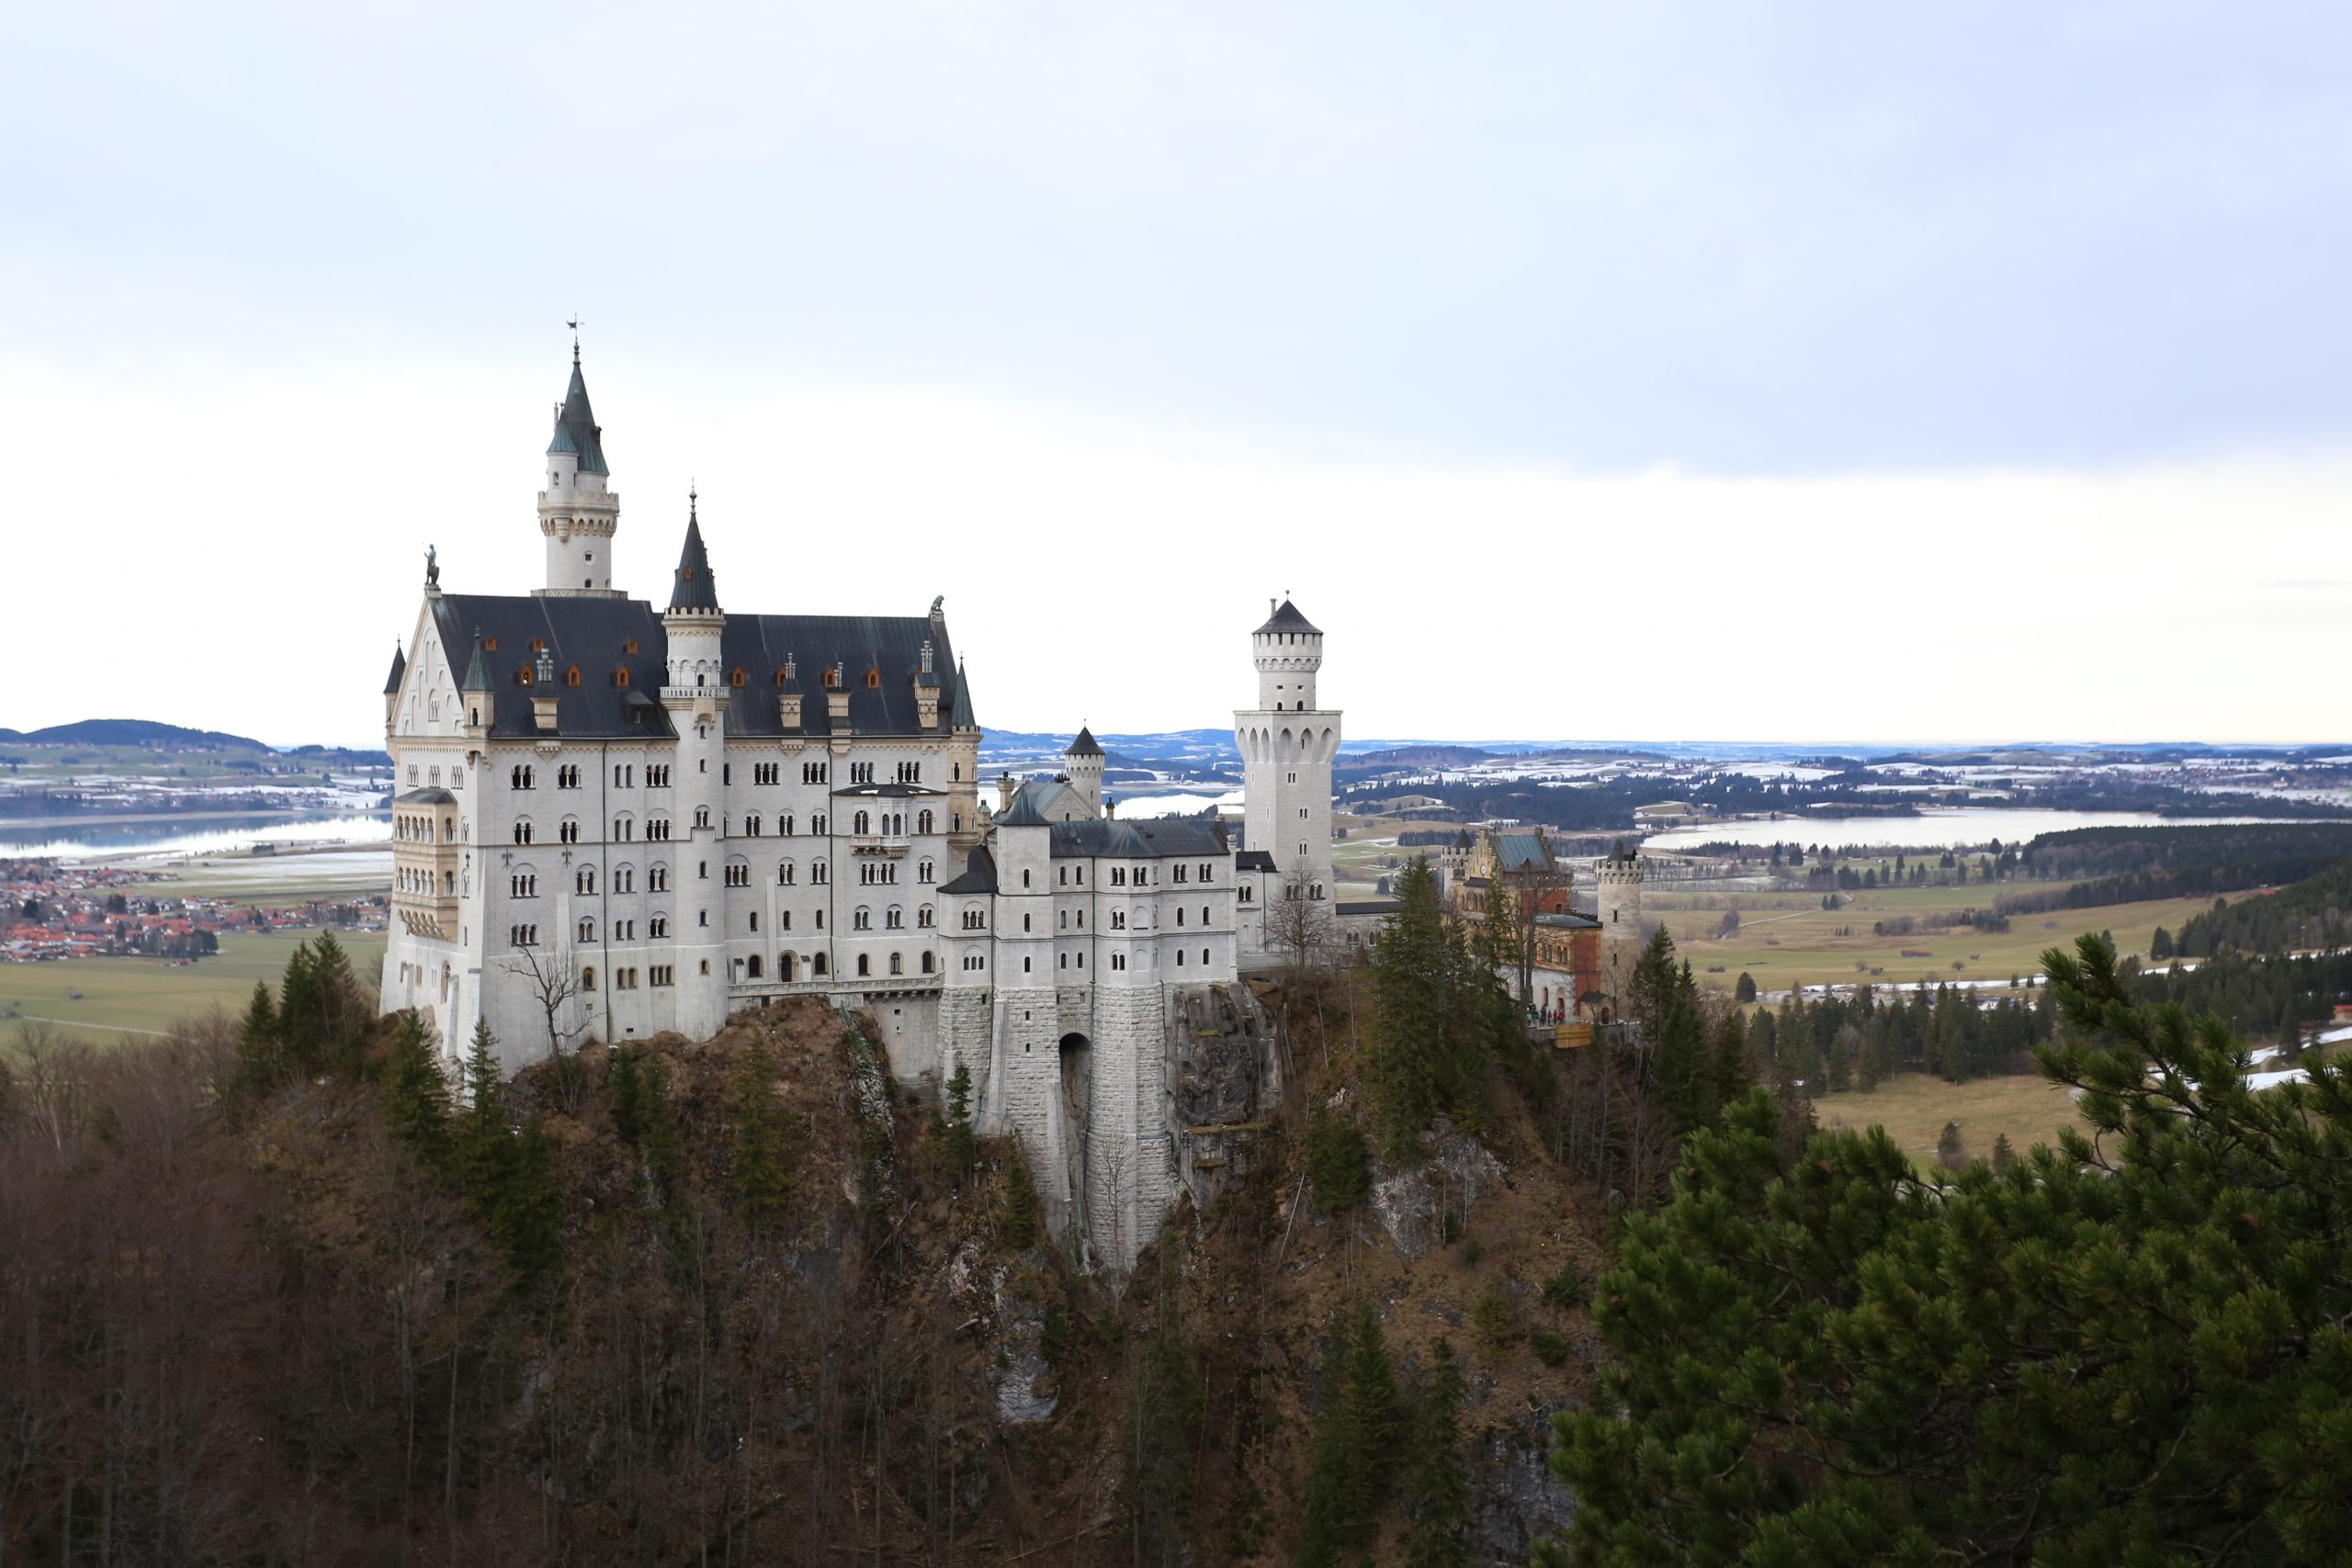 A Complete Guide to Visiting Neuschwanstein and Hohenschwangau